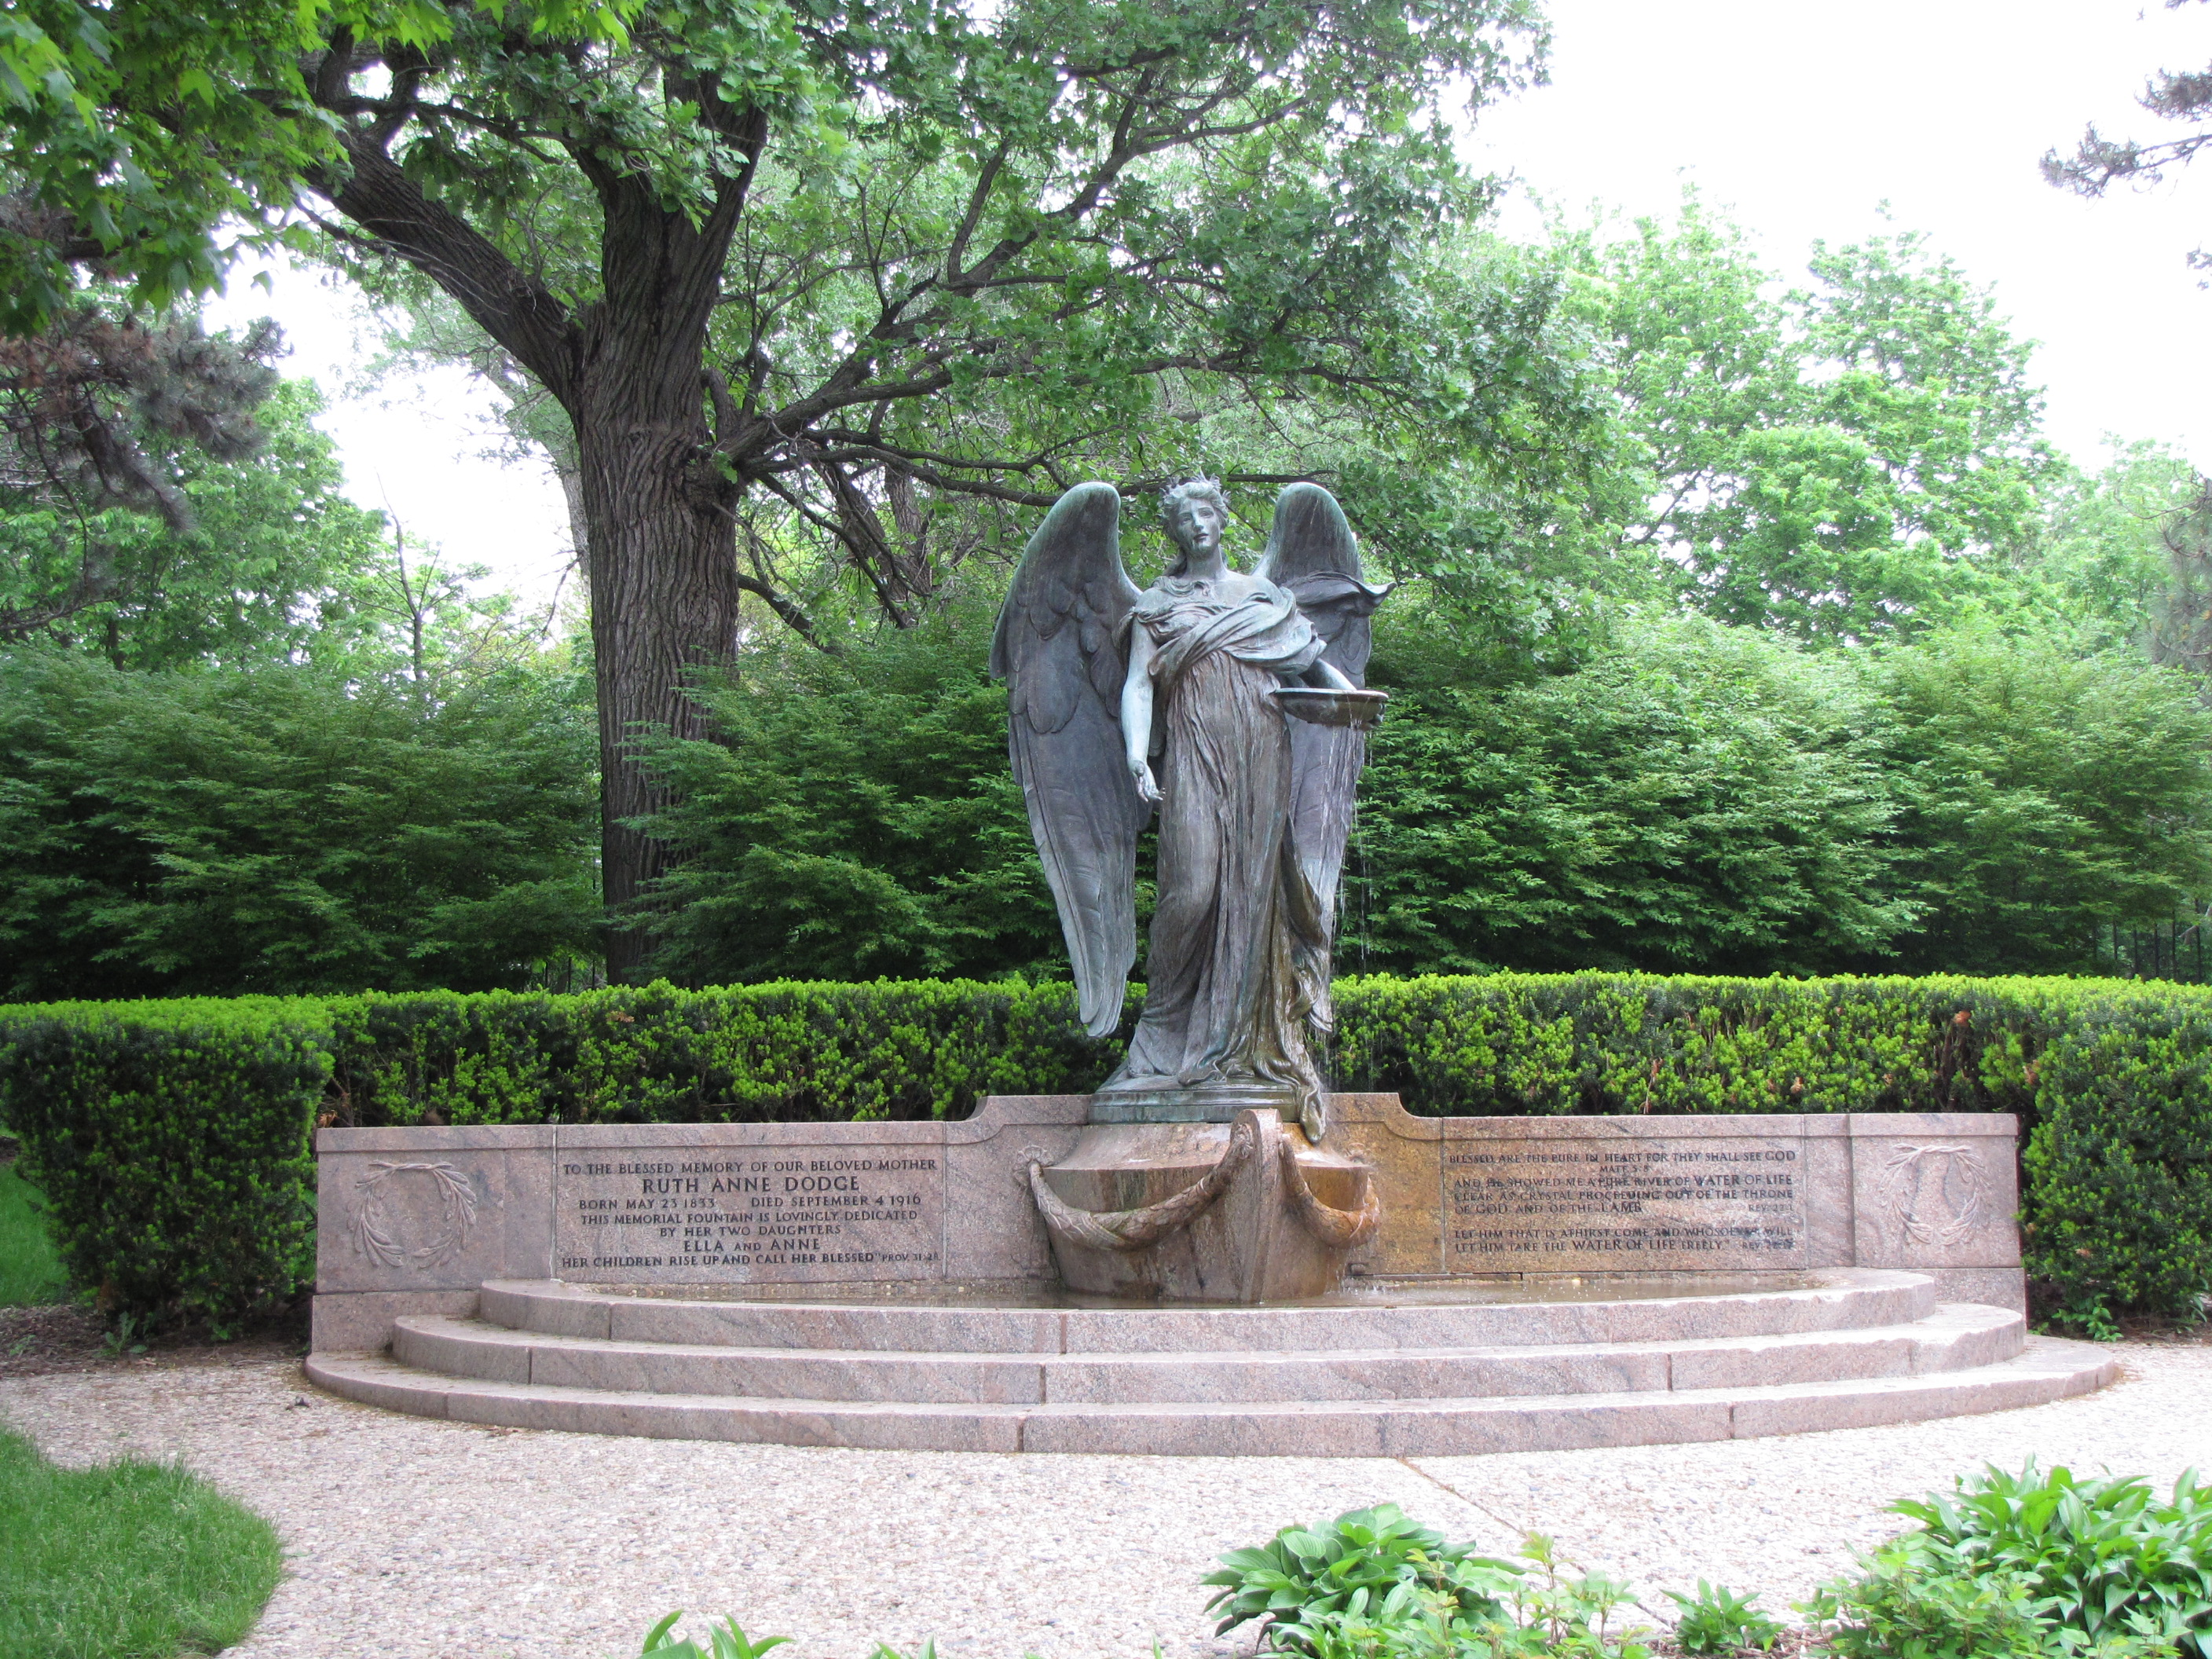 Visions of the Angel of Death | Gravely Speaking